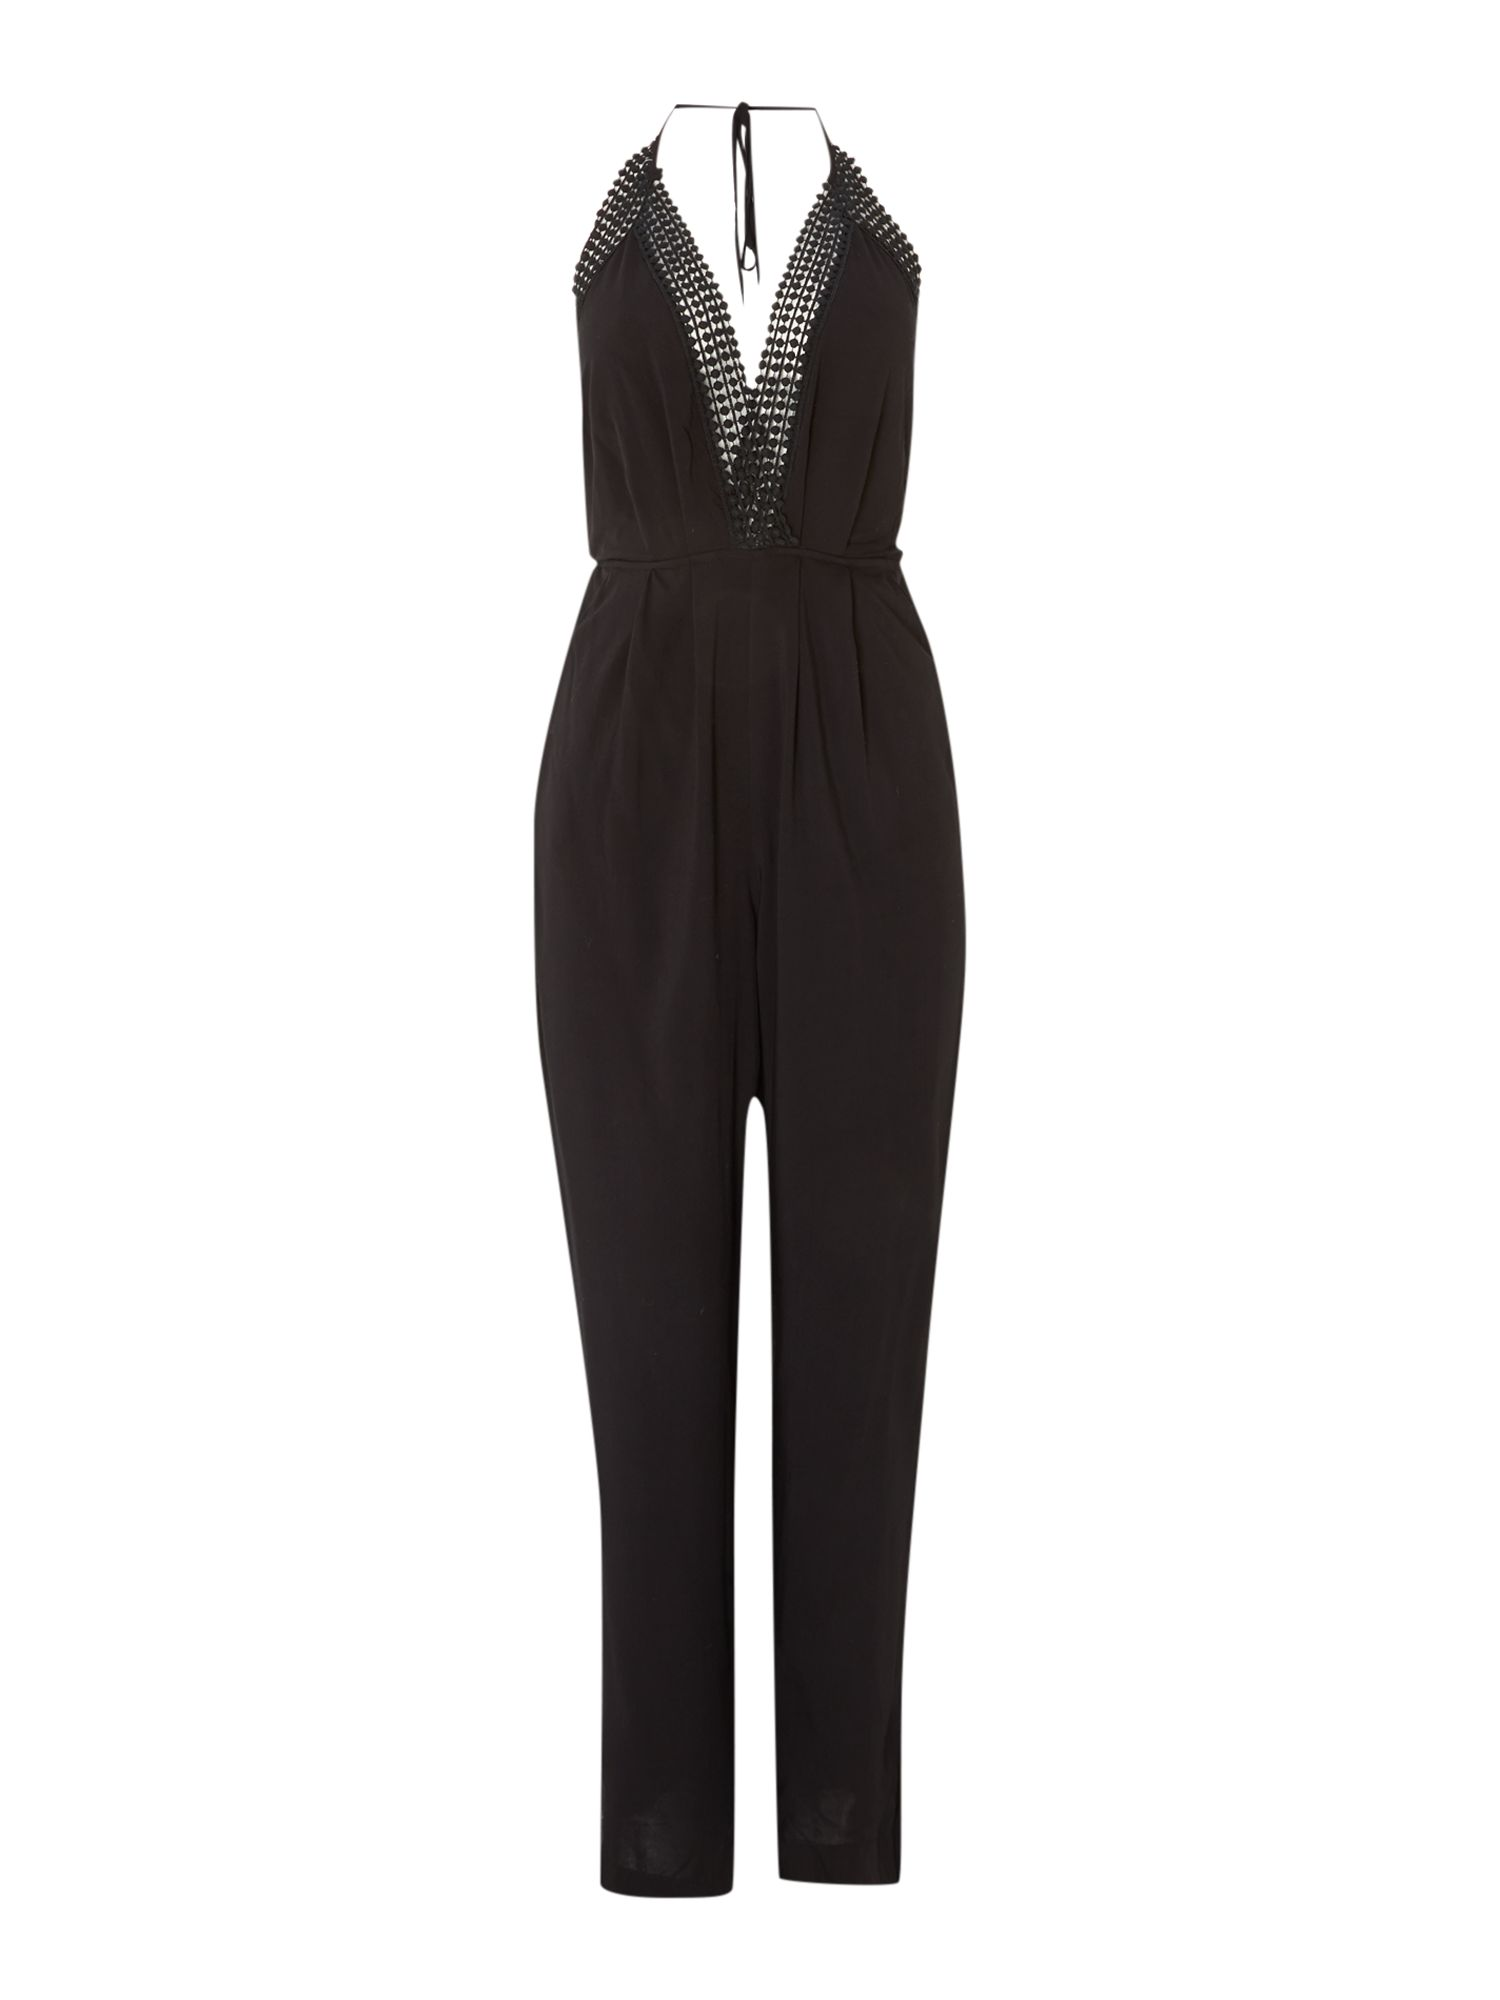 Crochet Front Cross Over Back Jumpsuit